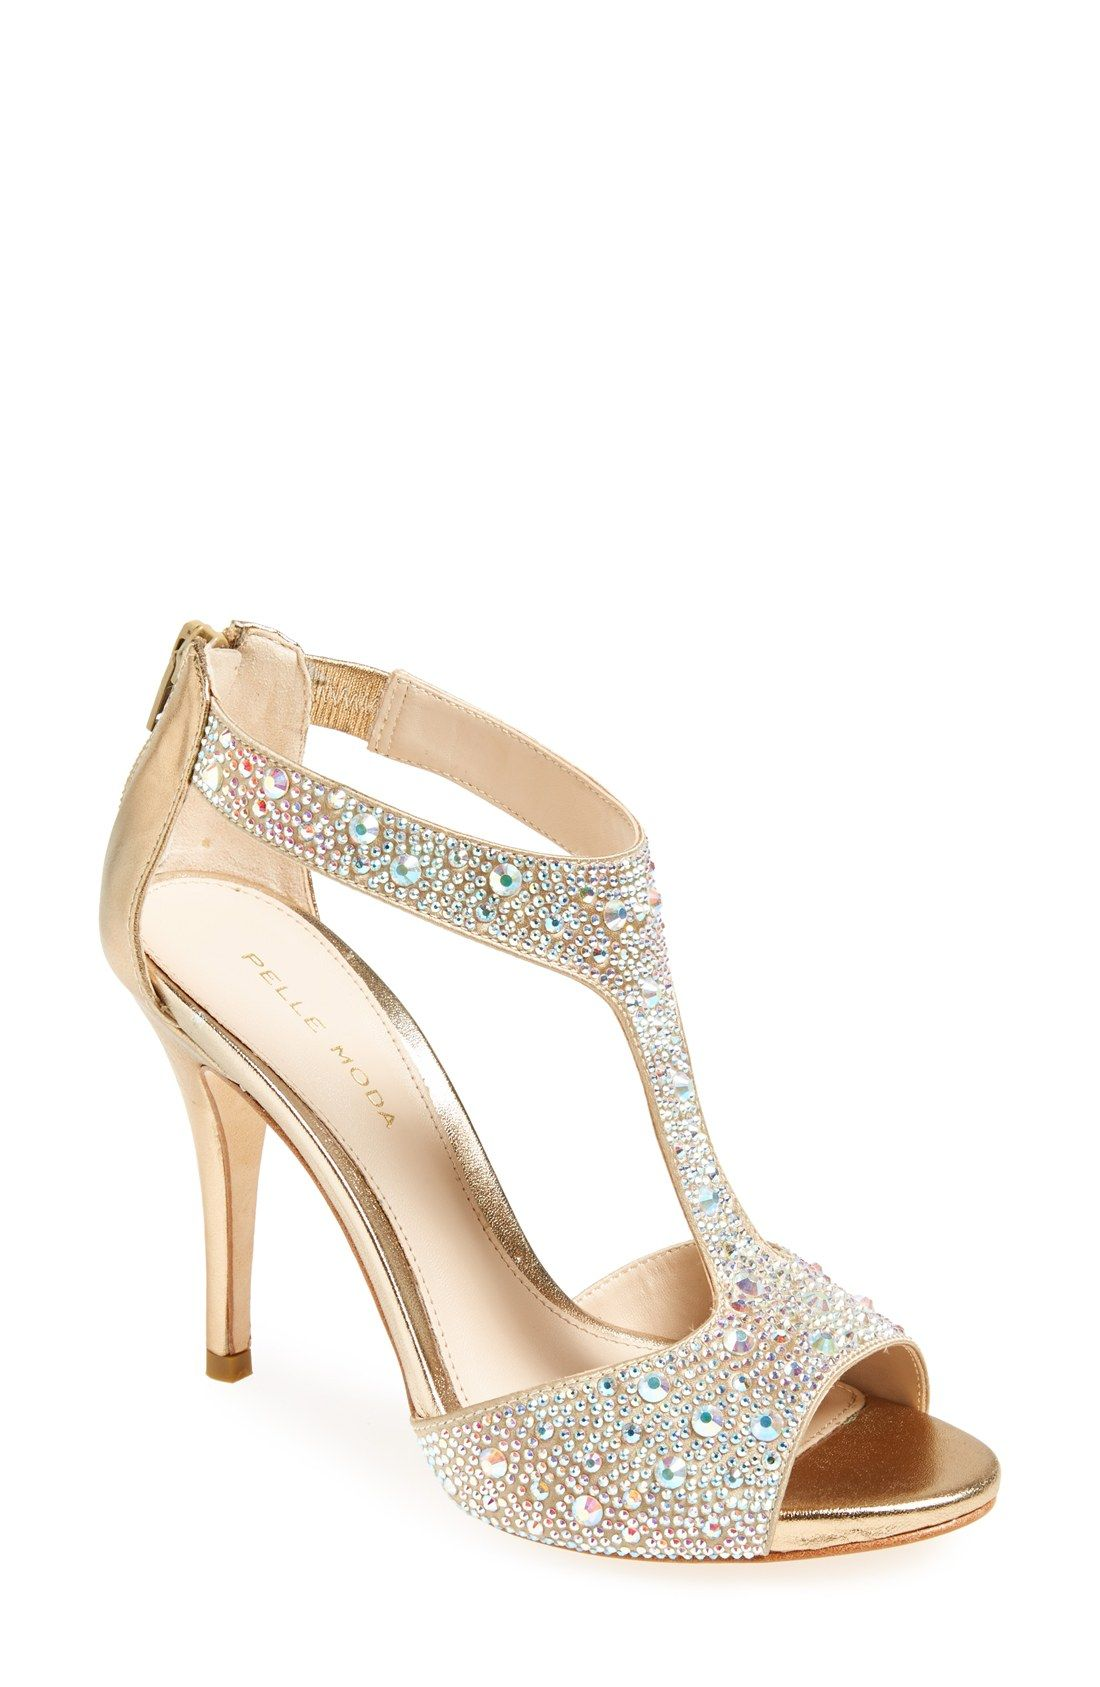 d6a08c6a4 These embellished gold t-strap sandals are perfect for prom ...